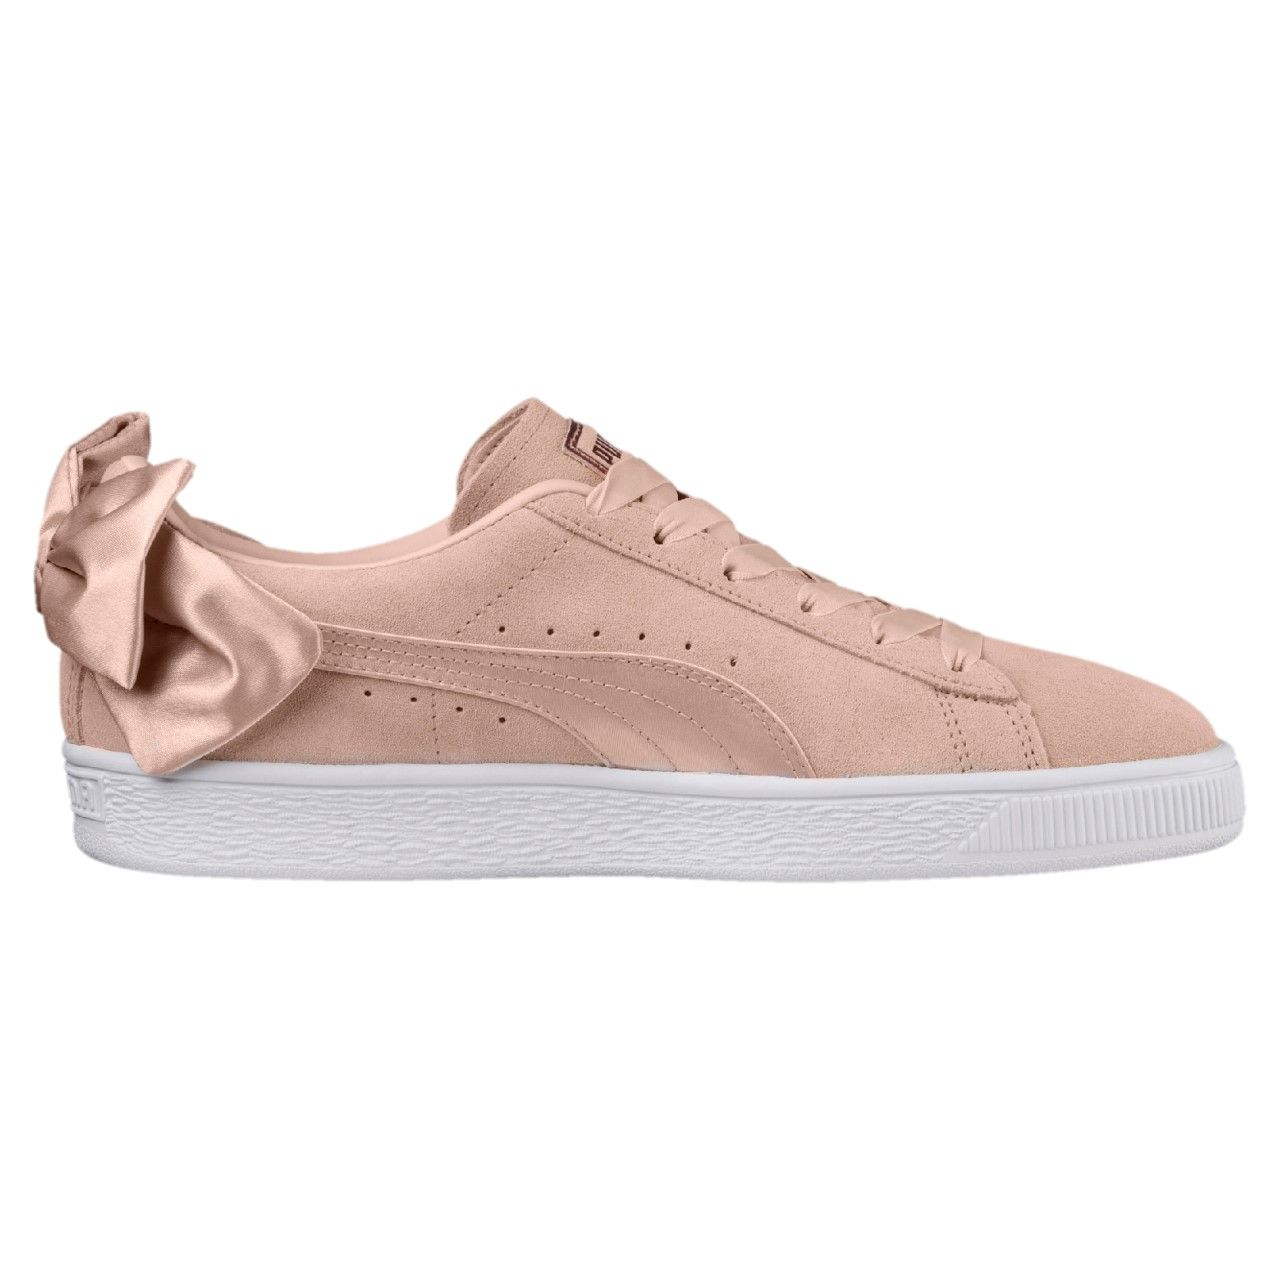 puma suede rosa pastell